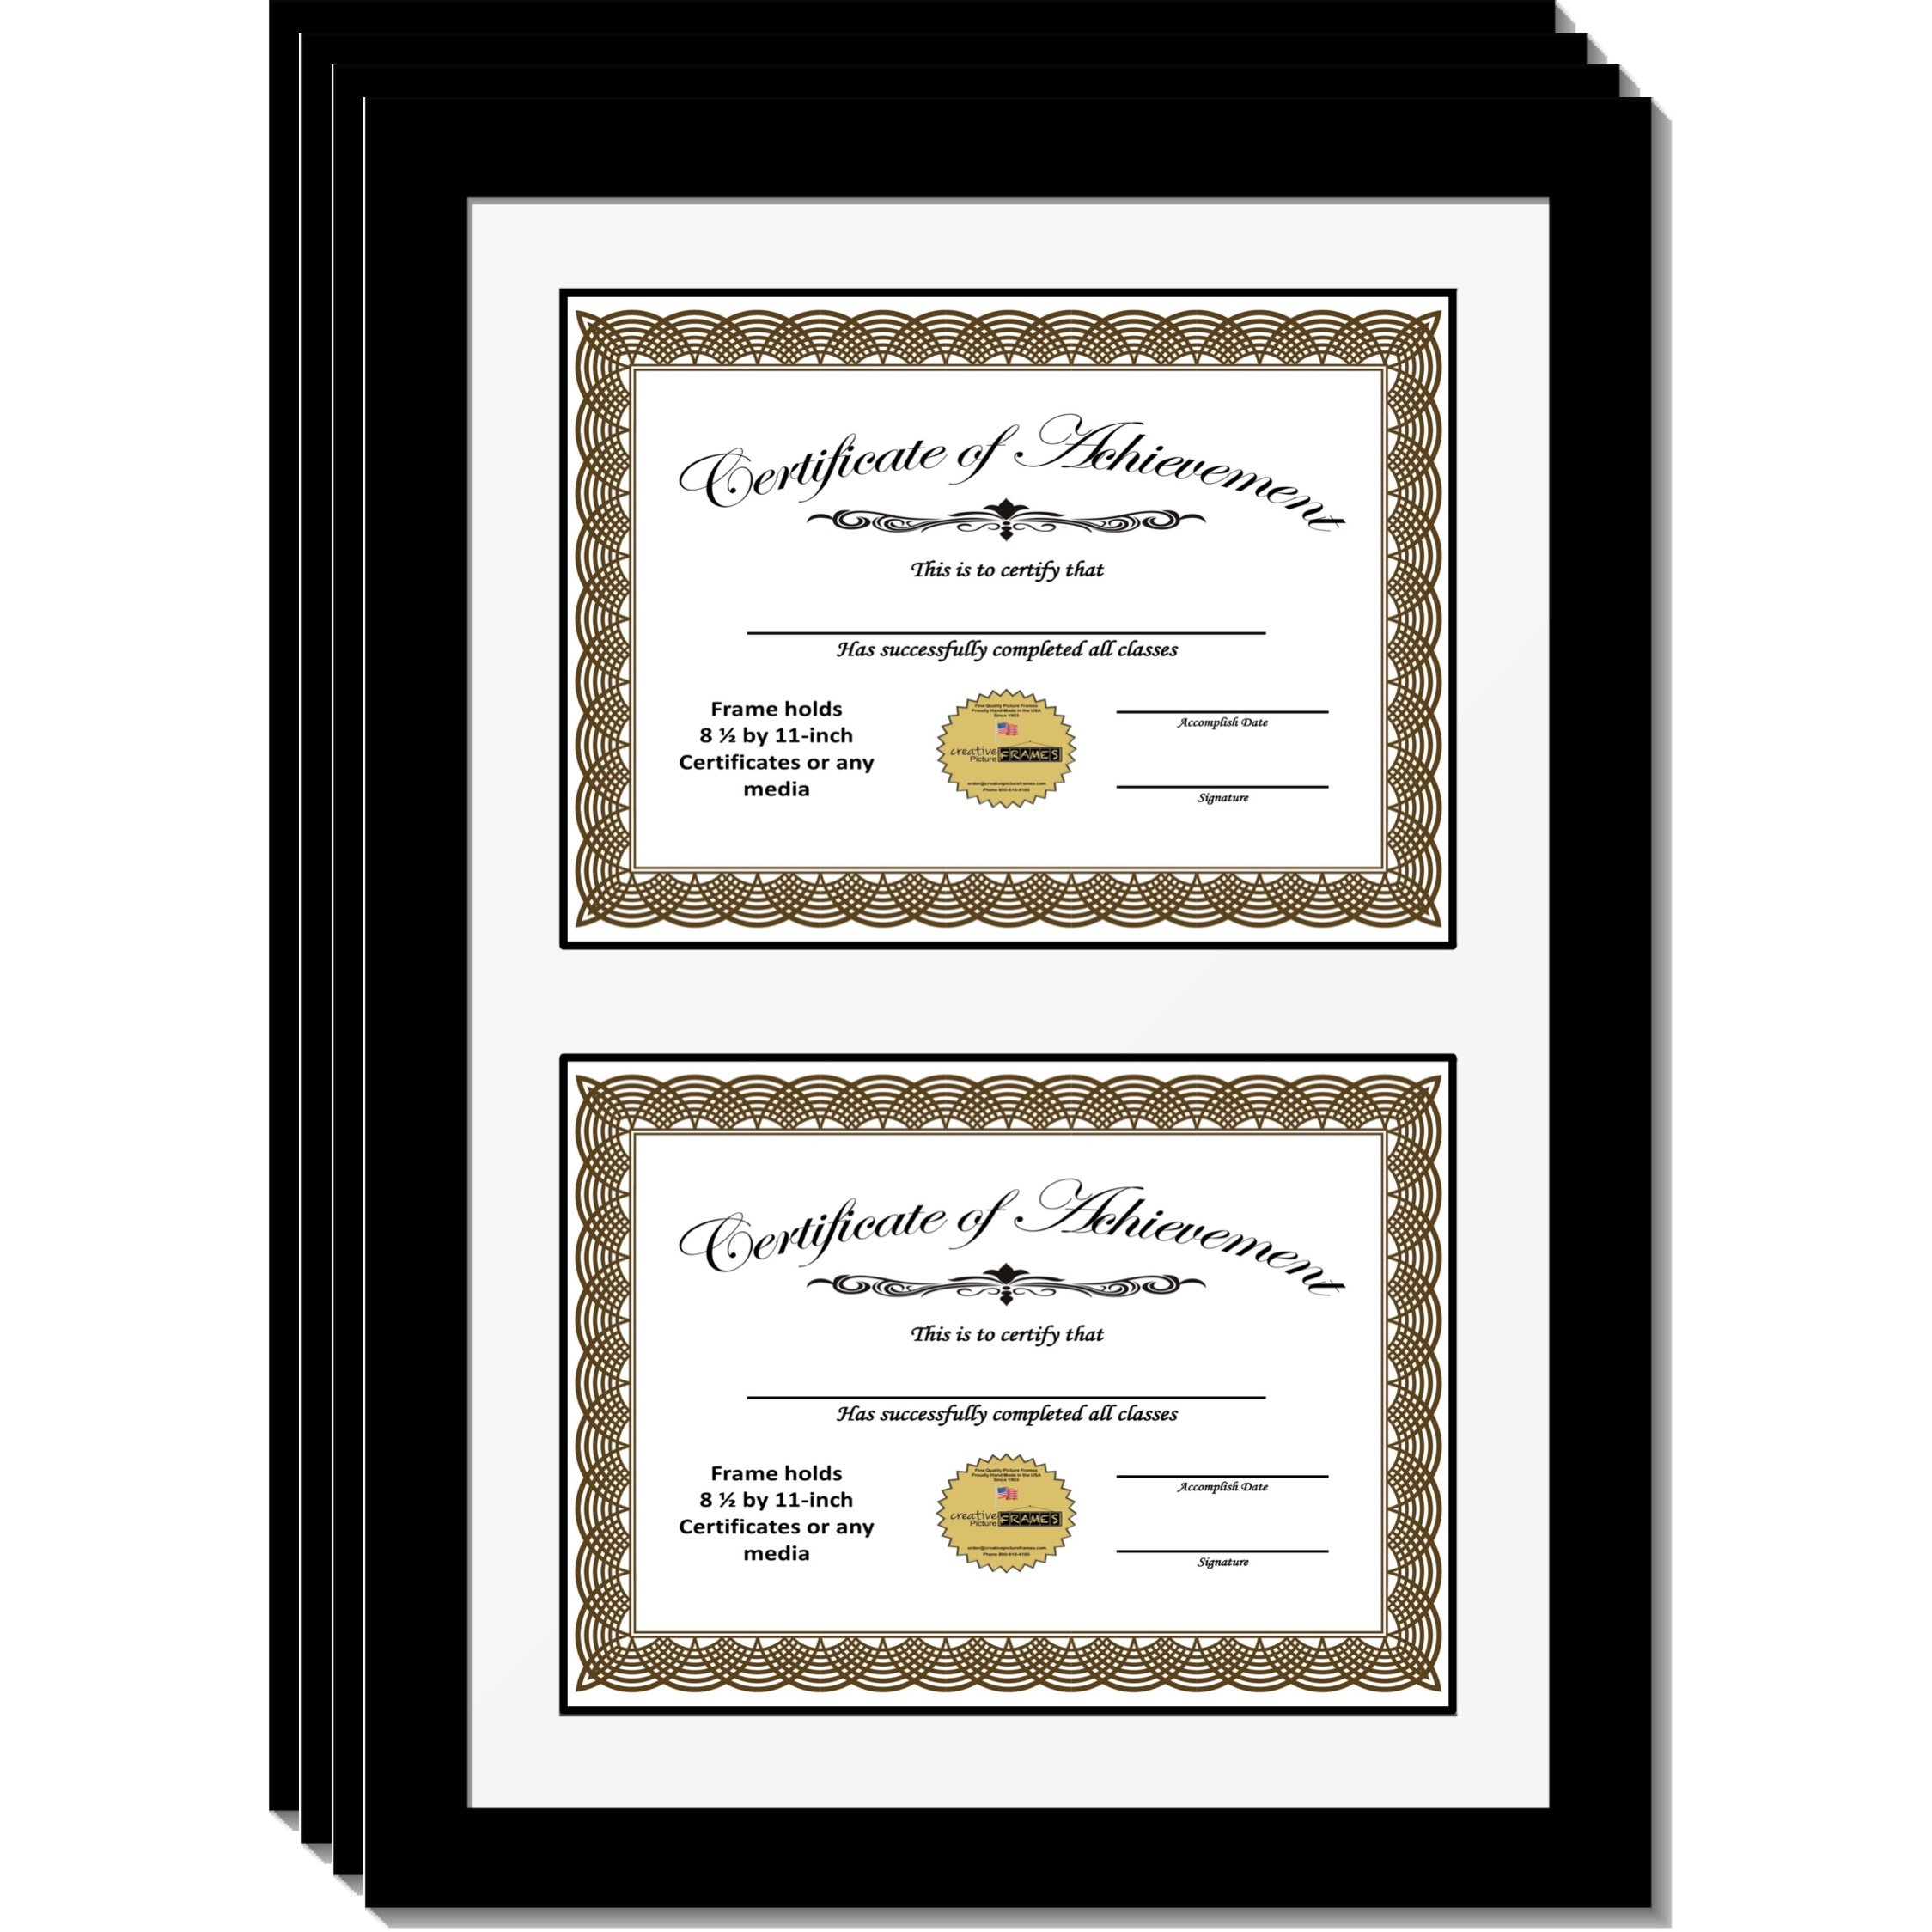 CreativePF [14x20bk-w] Double Diploma Frame with White Mat, Holds Two 8.5 by 11-inch Documents with Wall Hanger (4-Pack)